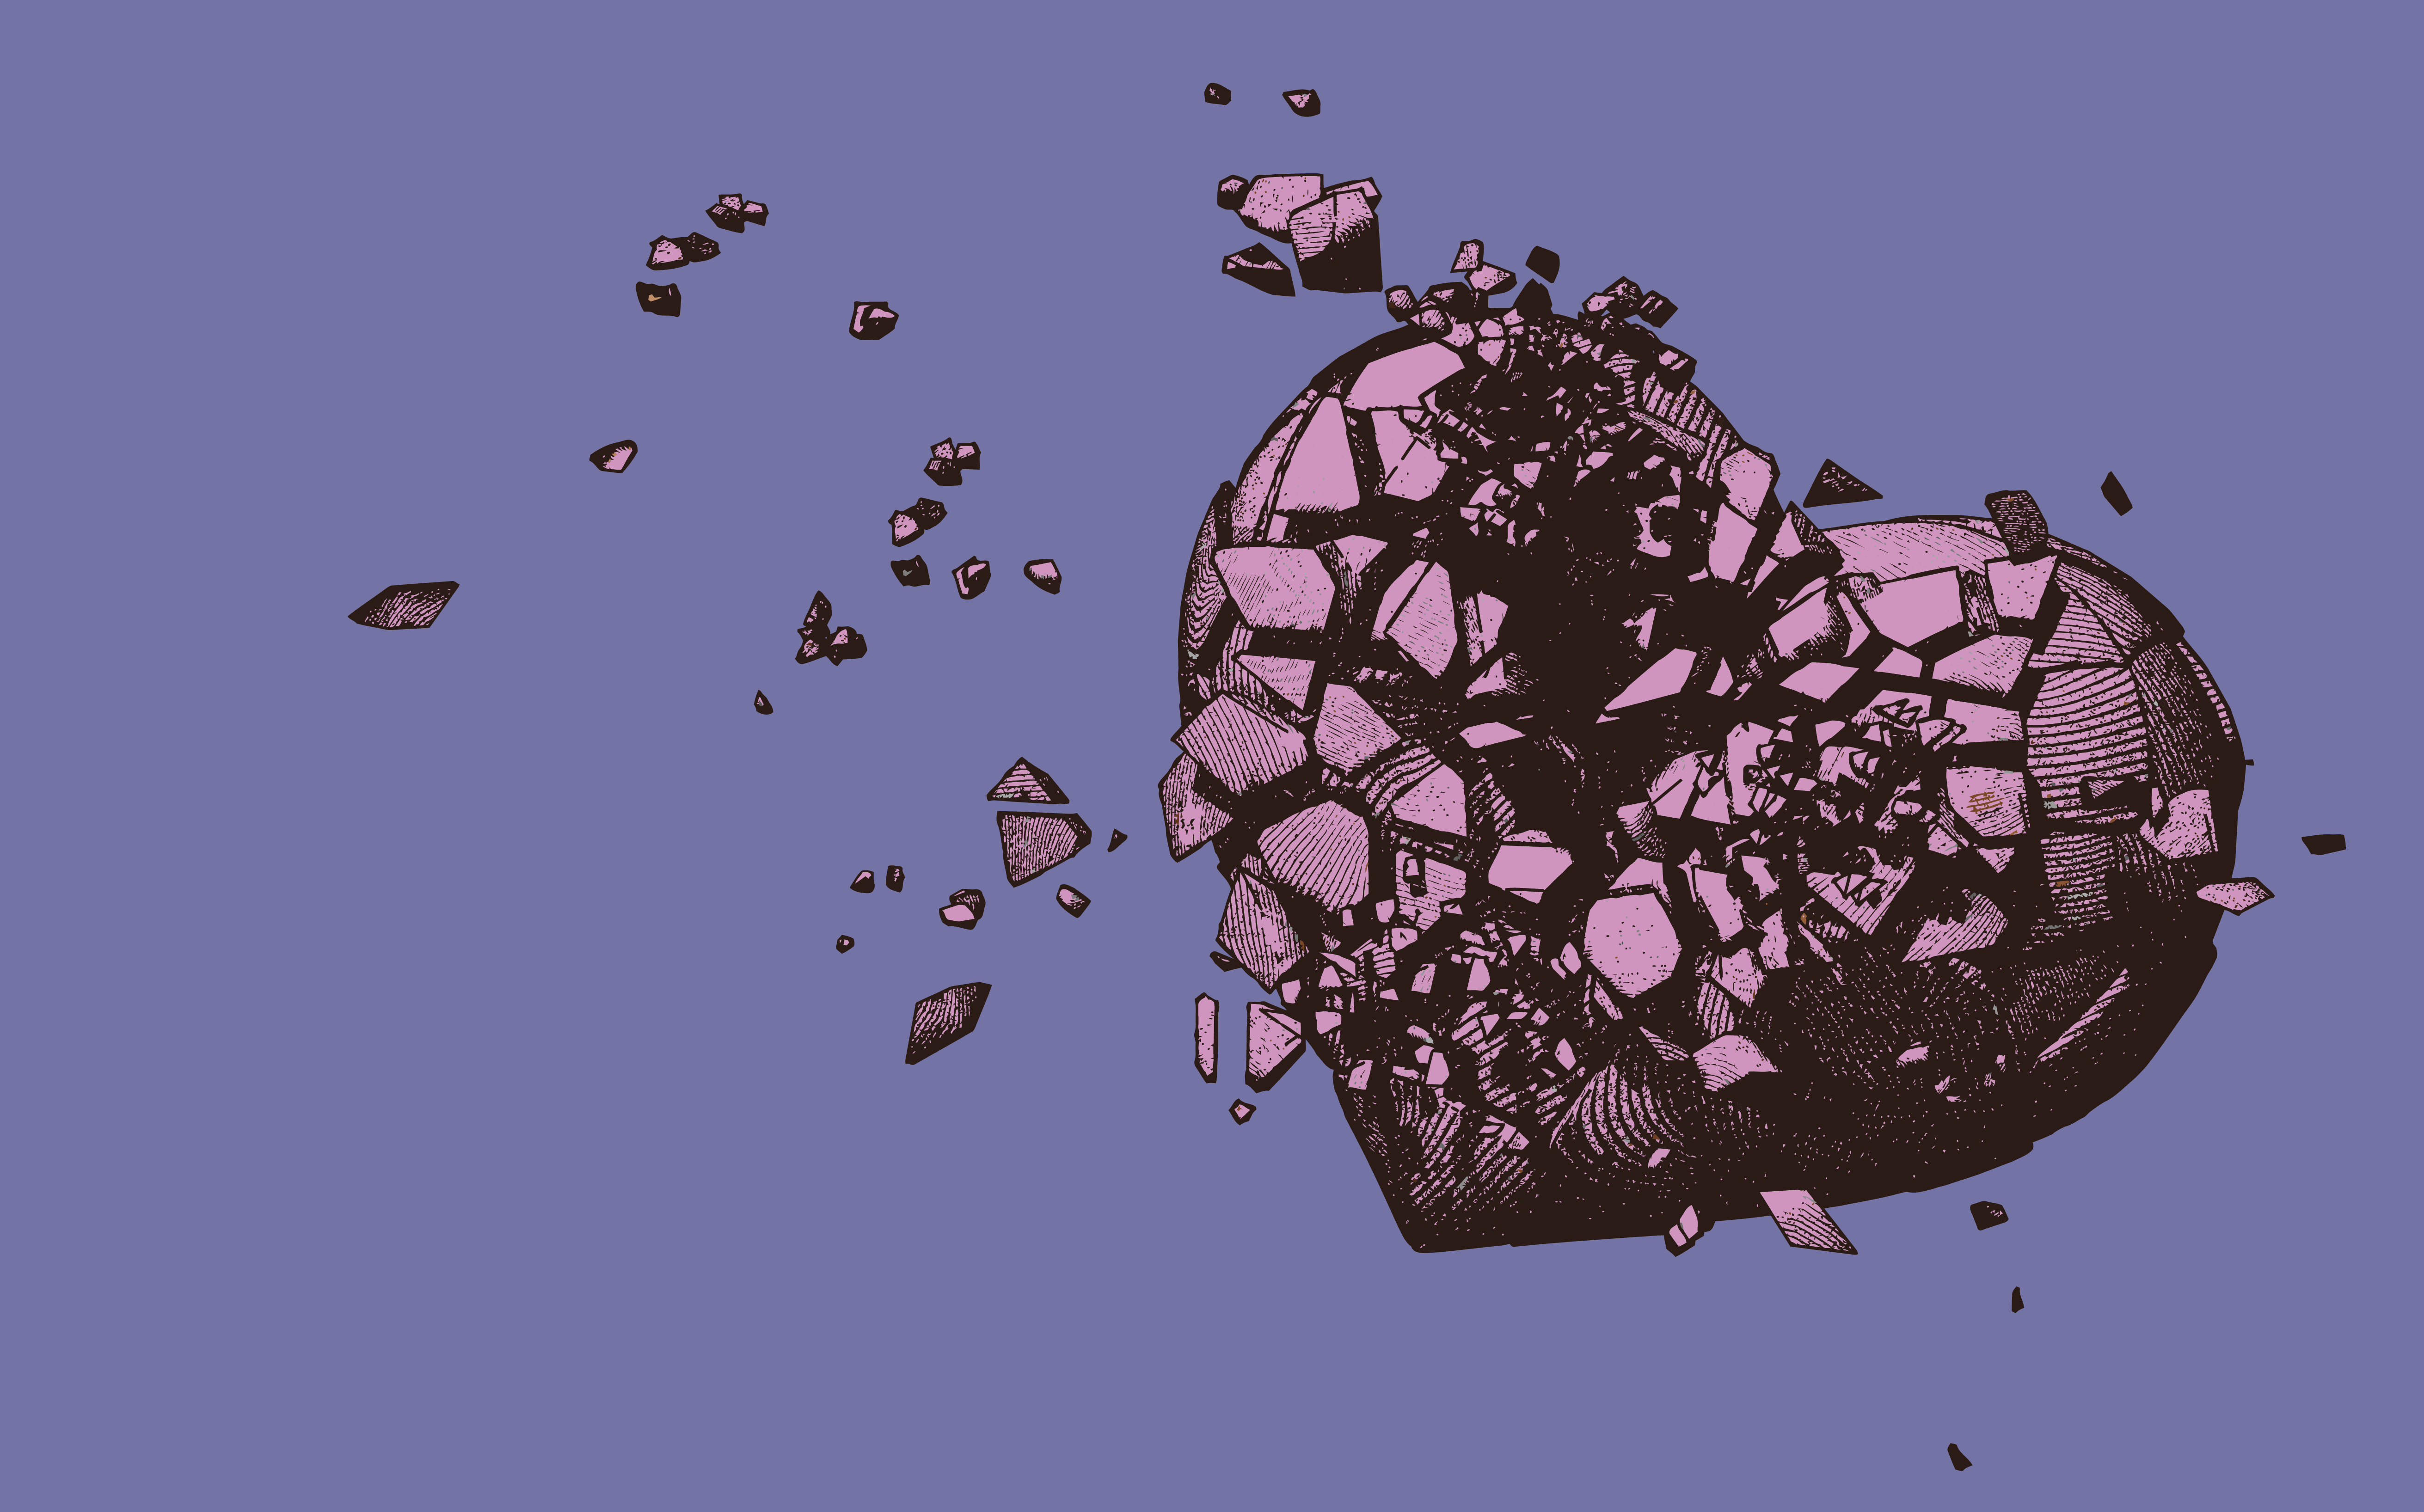 An illustration shows a shattered pink heart blowing away.